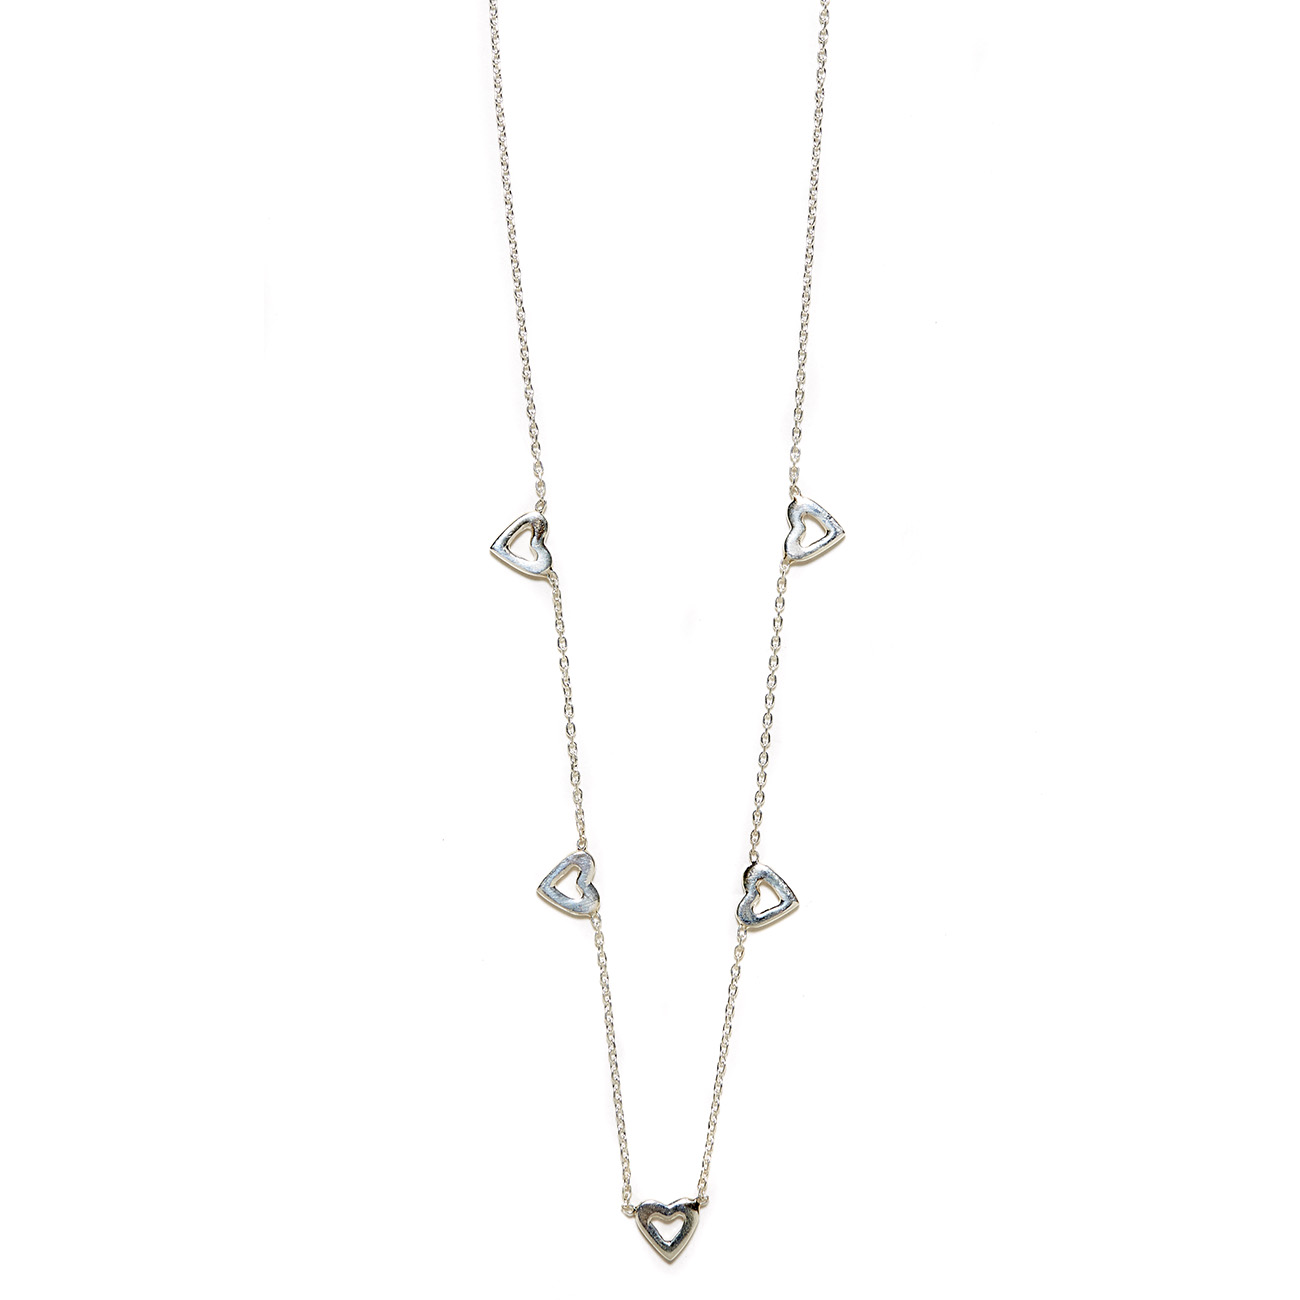 Elisa Solomon - Sterling Silver Tiny Open Hearts Necklace